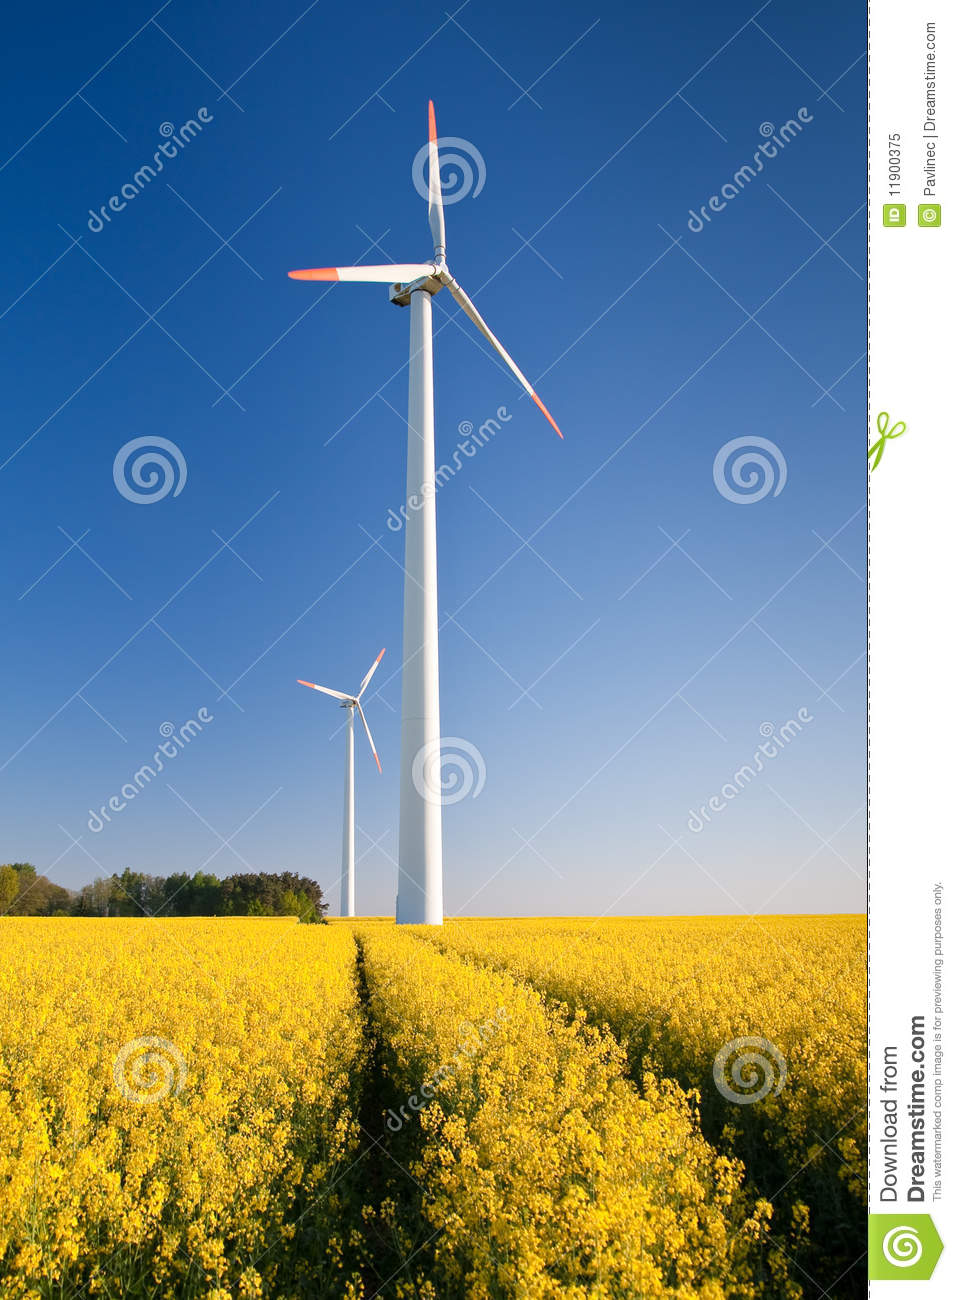 carnegie deli map with Royalty Free Stock Photo Windmill Farm Rape Field Image11900375 on 214668801 together with Game Of Thrones Costars On Set Prank further 4762396139 in addition 6491059433 in addition Index.